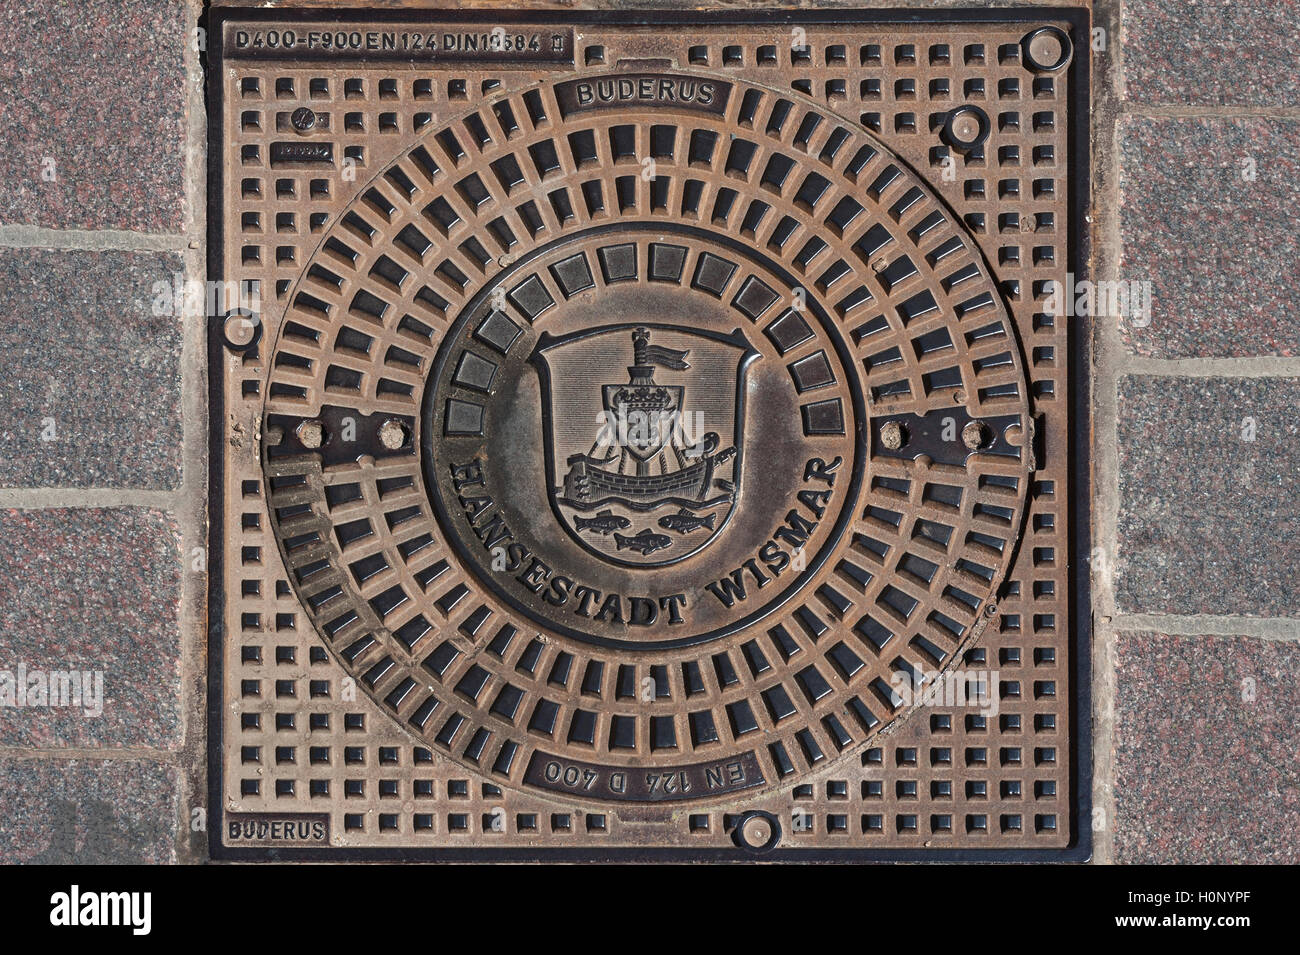 Manhole in Wismar, Wismar, Mecklenburg-Western Pomerania, Germany - Stock Image